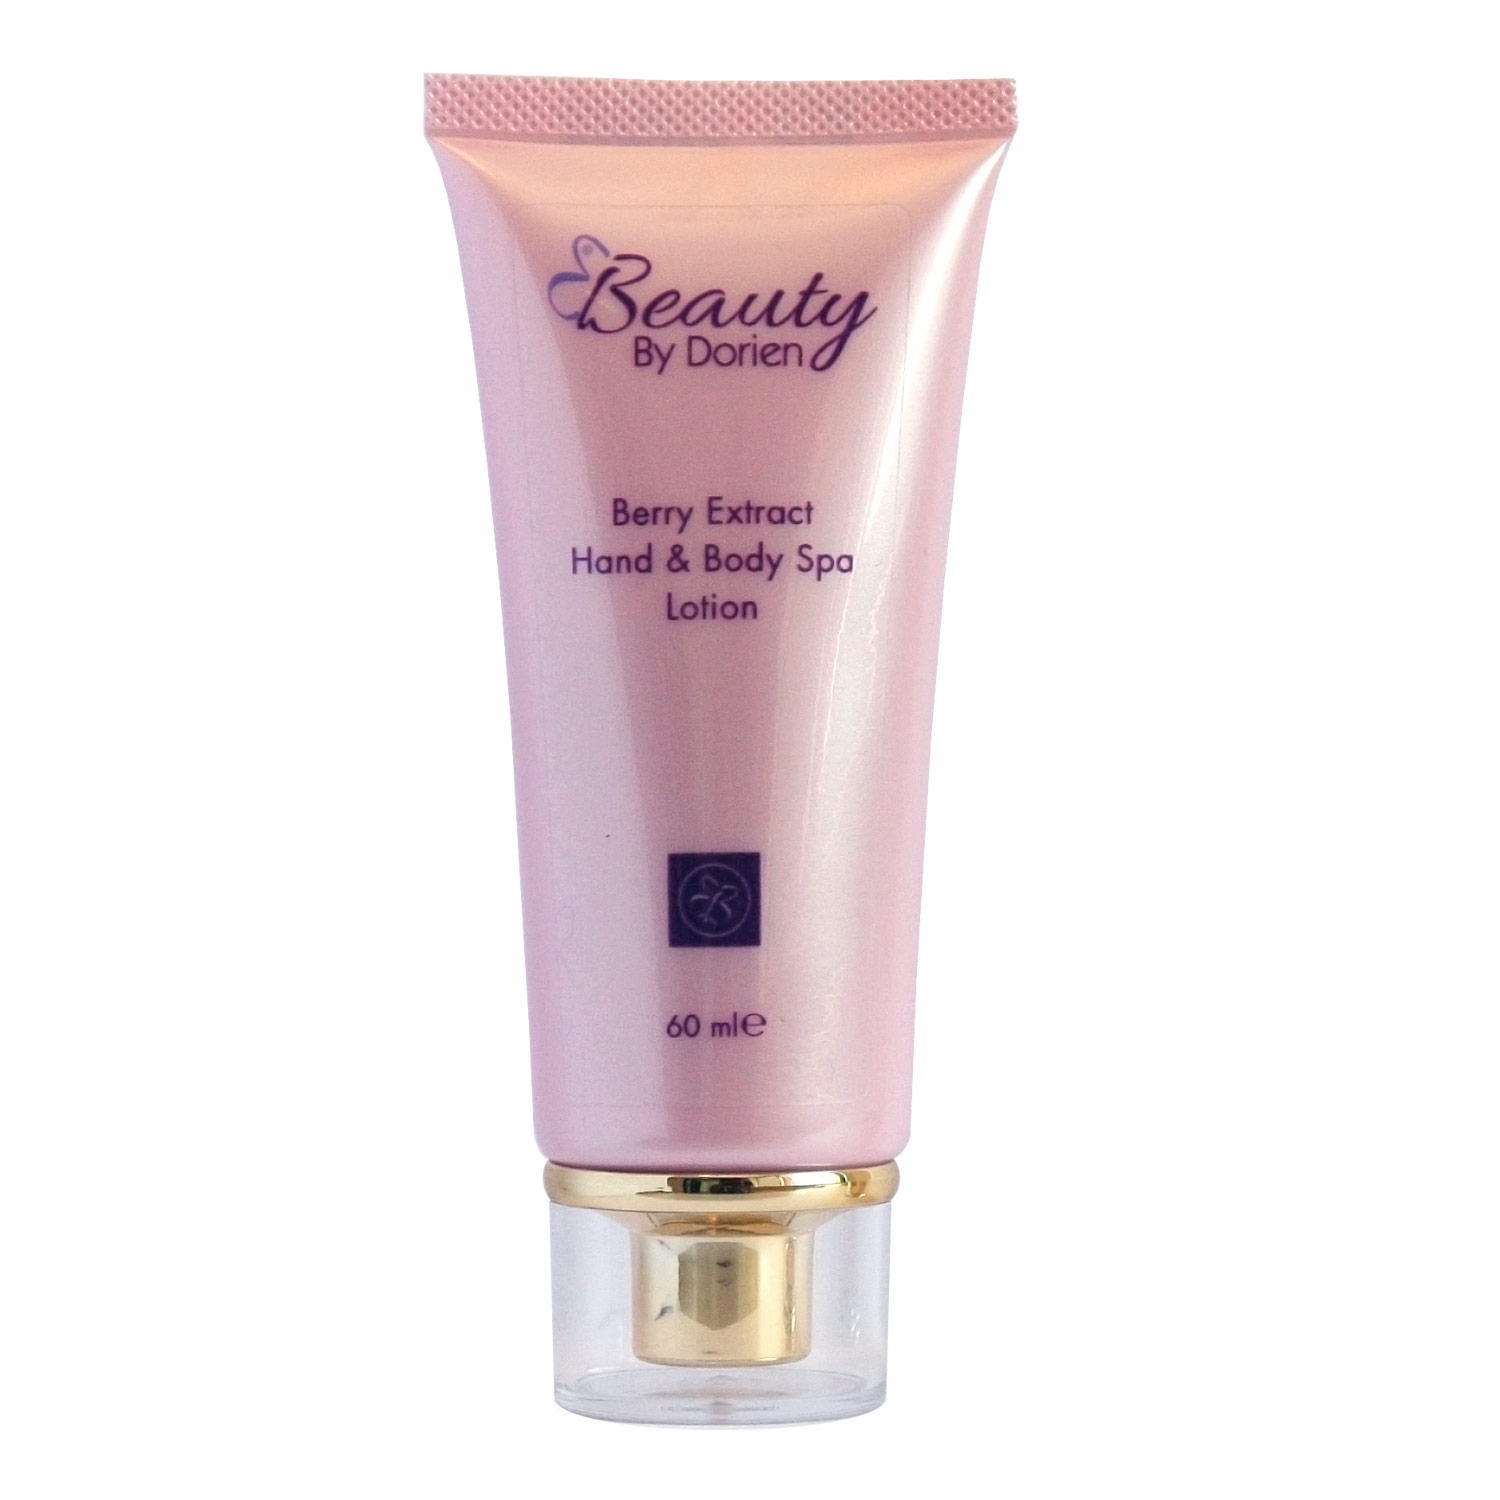 Handcrème & Body Lotion met Berry Extract